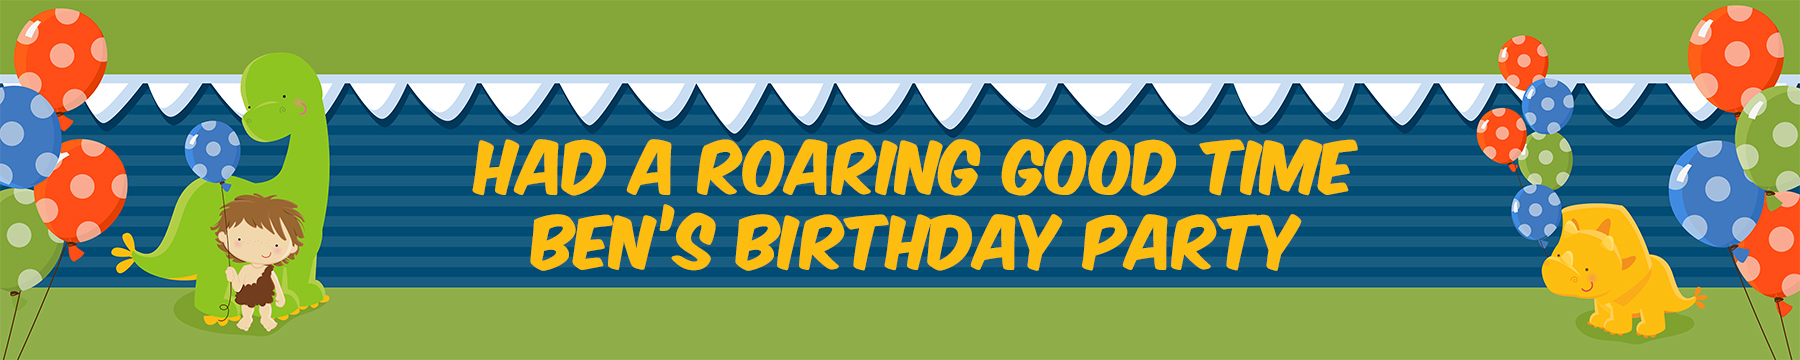 Dinosaur and Caveman - Personalized Birthday Party Banners thumbnail